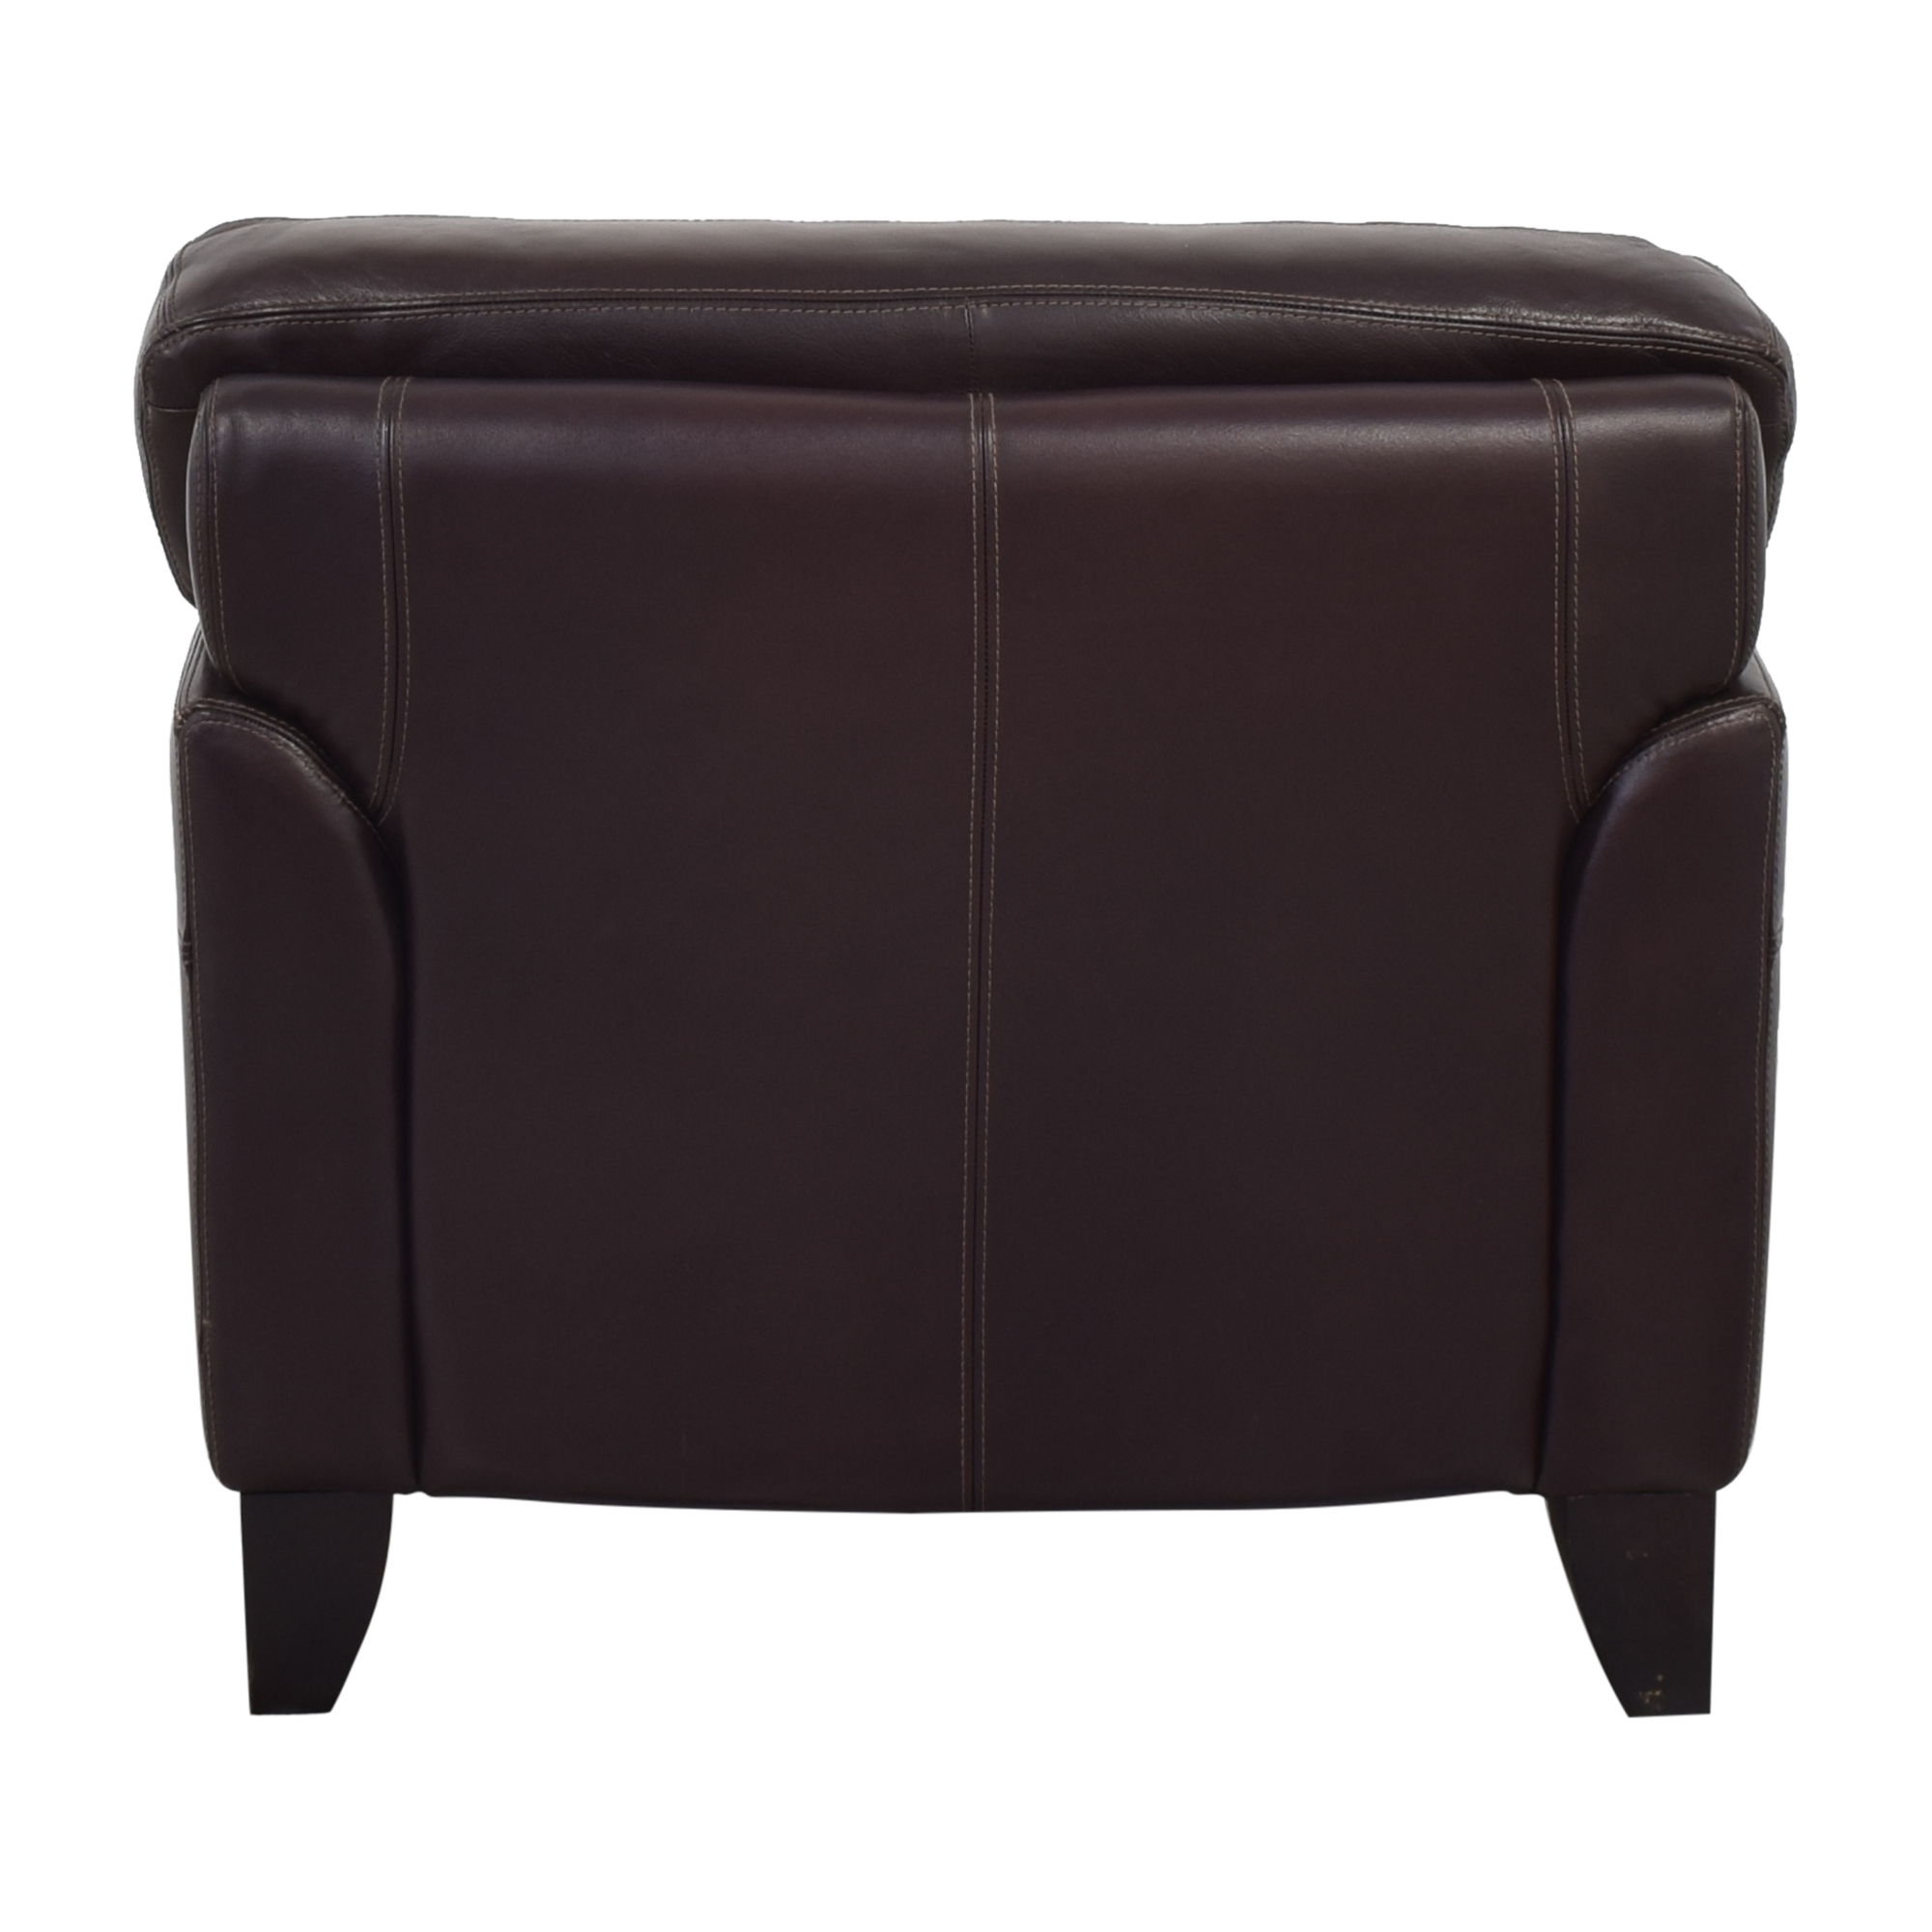 Macy's Macy's Chateau d'Ax Accent Chair ct